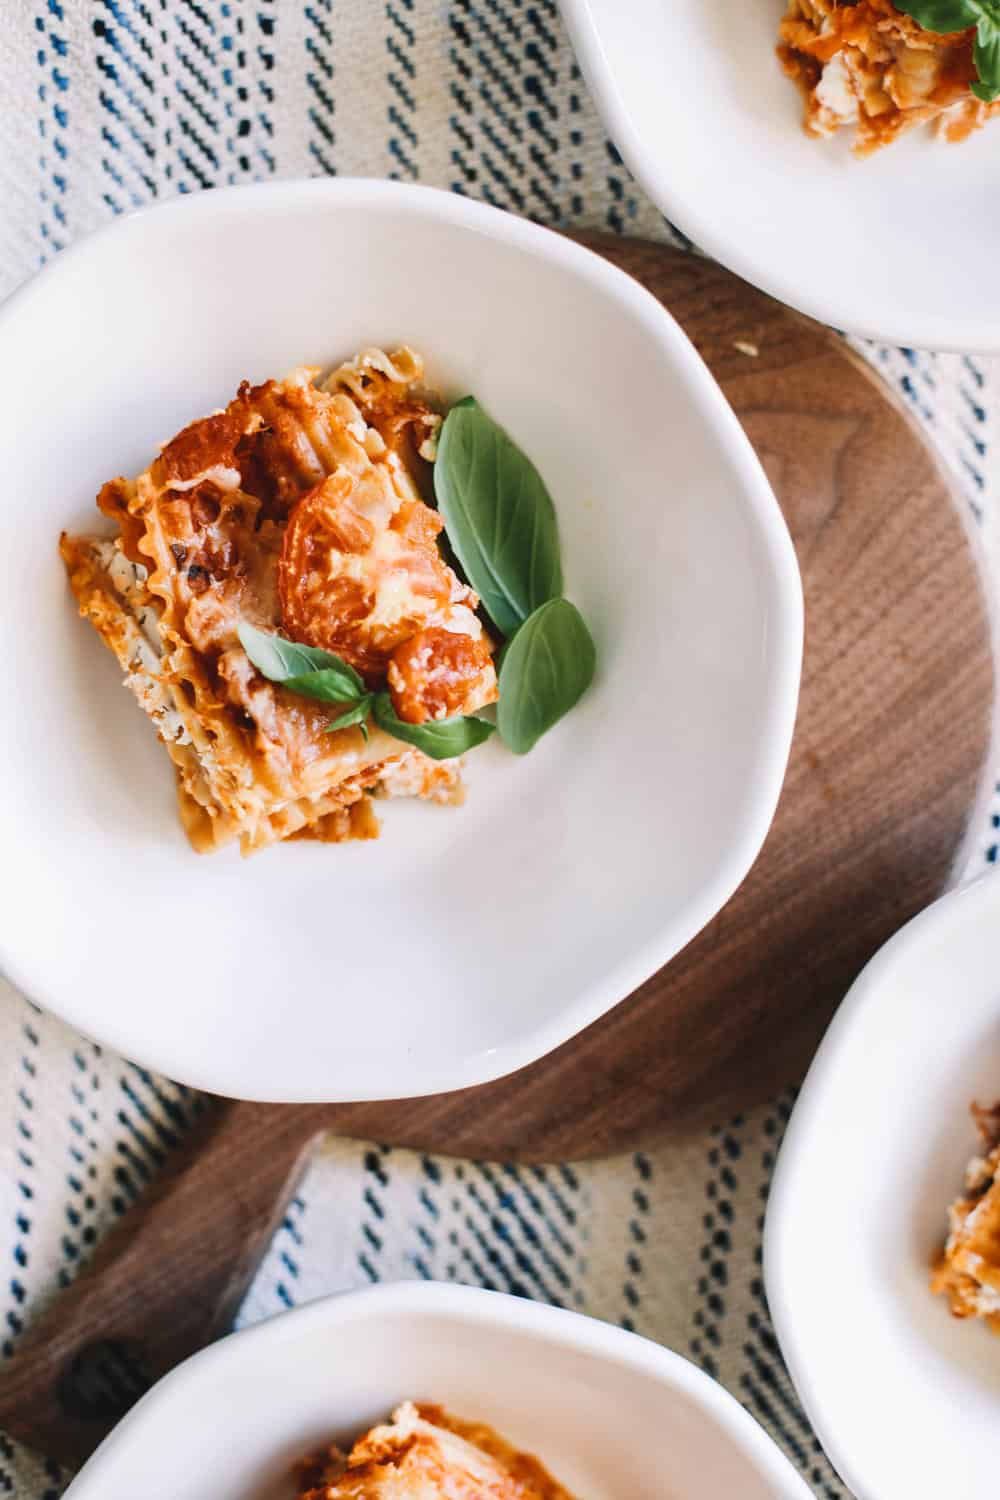 A serving of homemade lasagna in a white bowl.